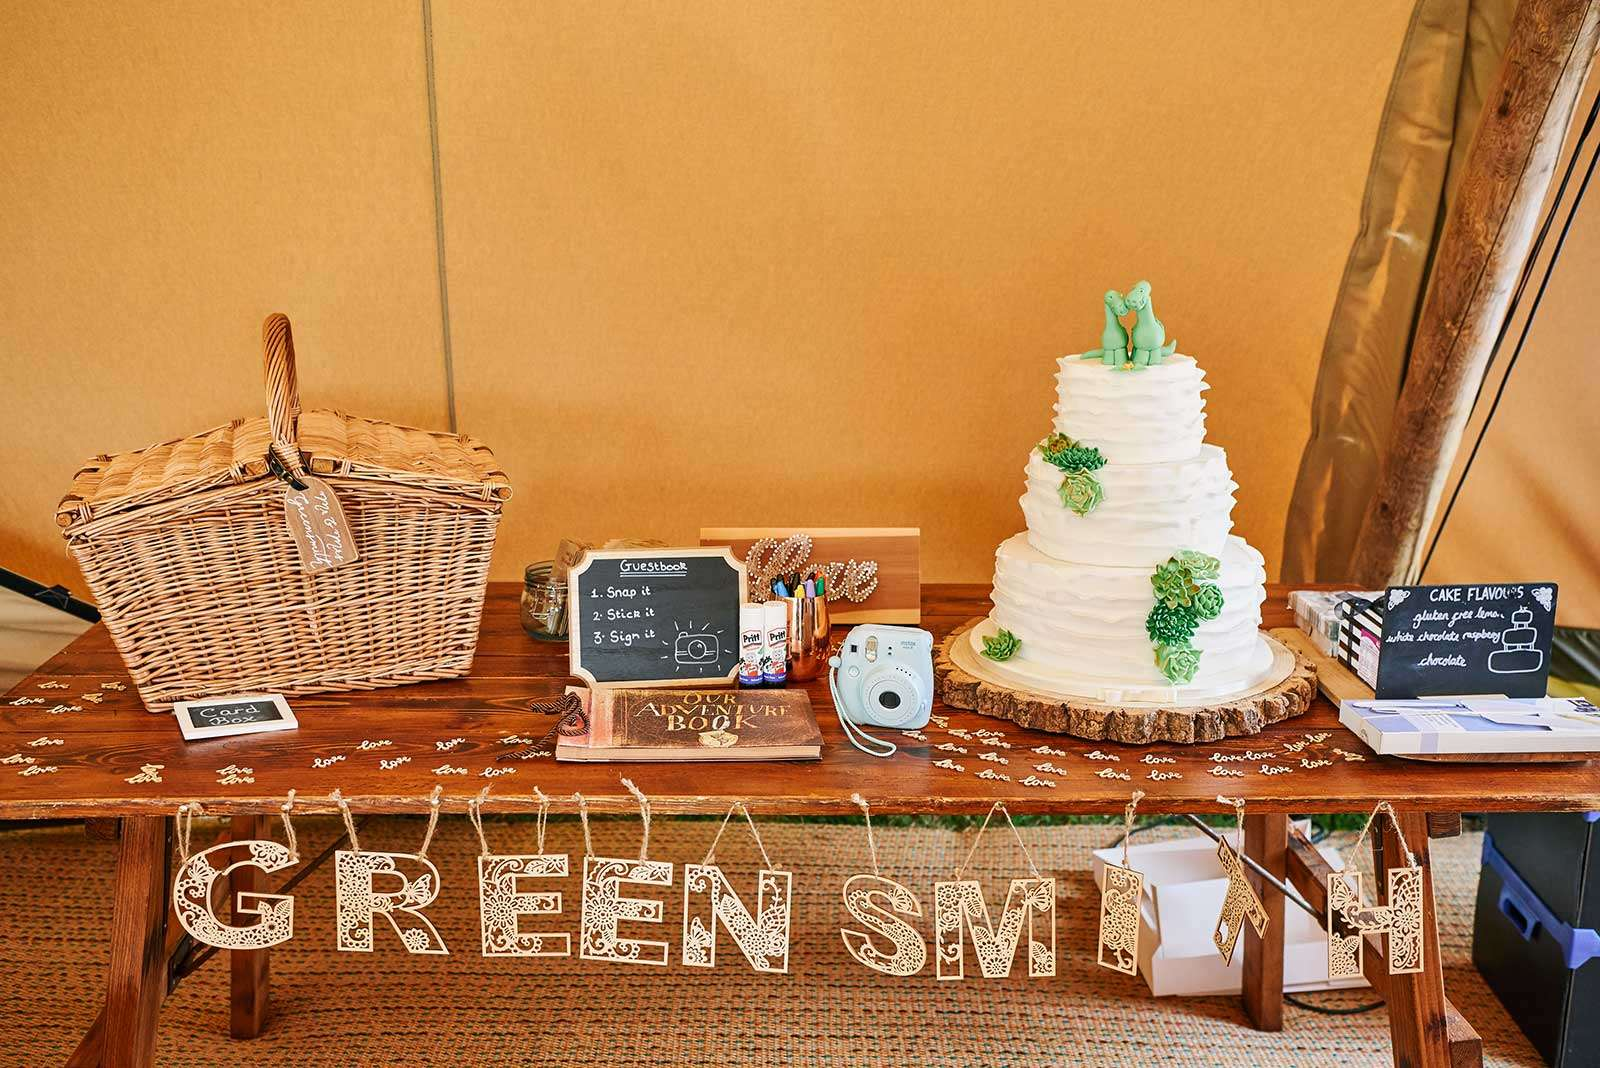 Wedding table arrangement with cake